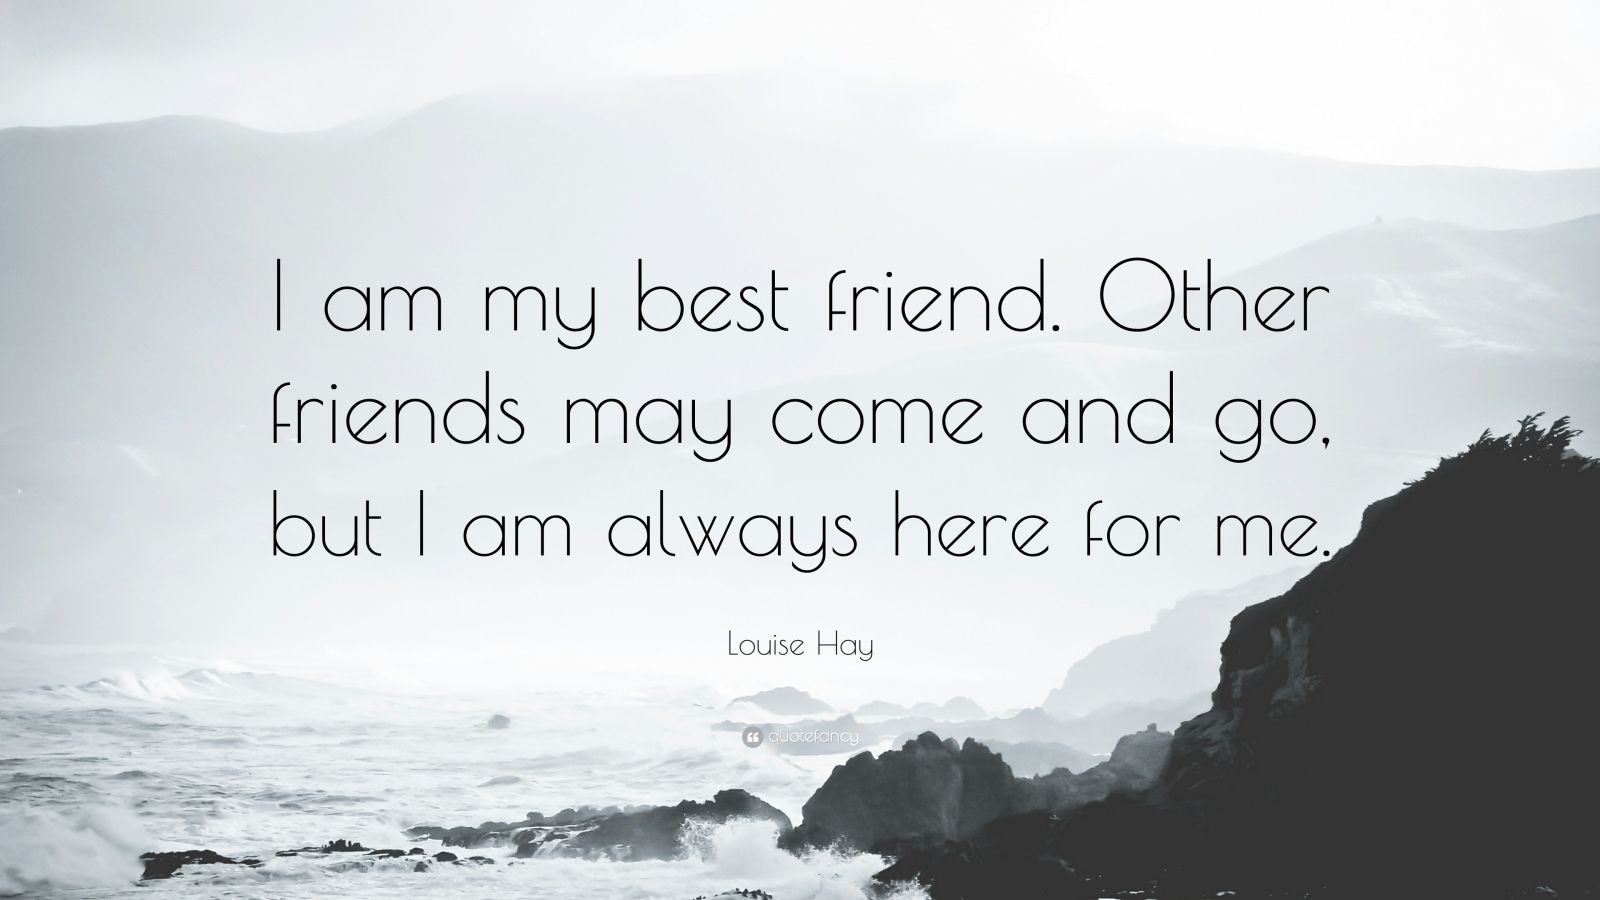 """Louise Hay Quote: """"I am my best friend. Other friends may come and go, but I am always here for me."""""""